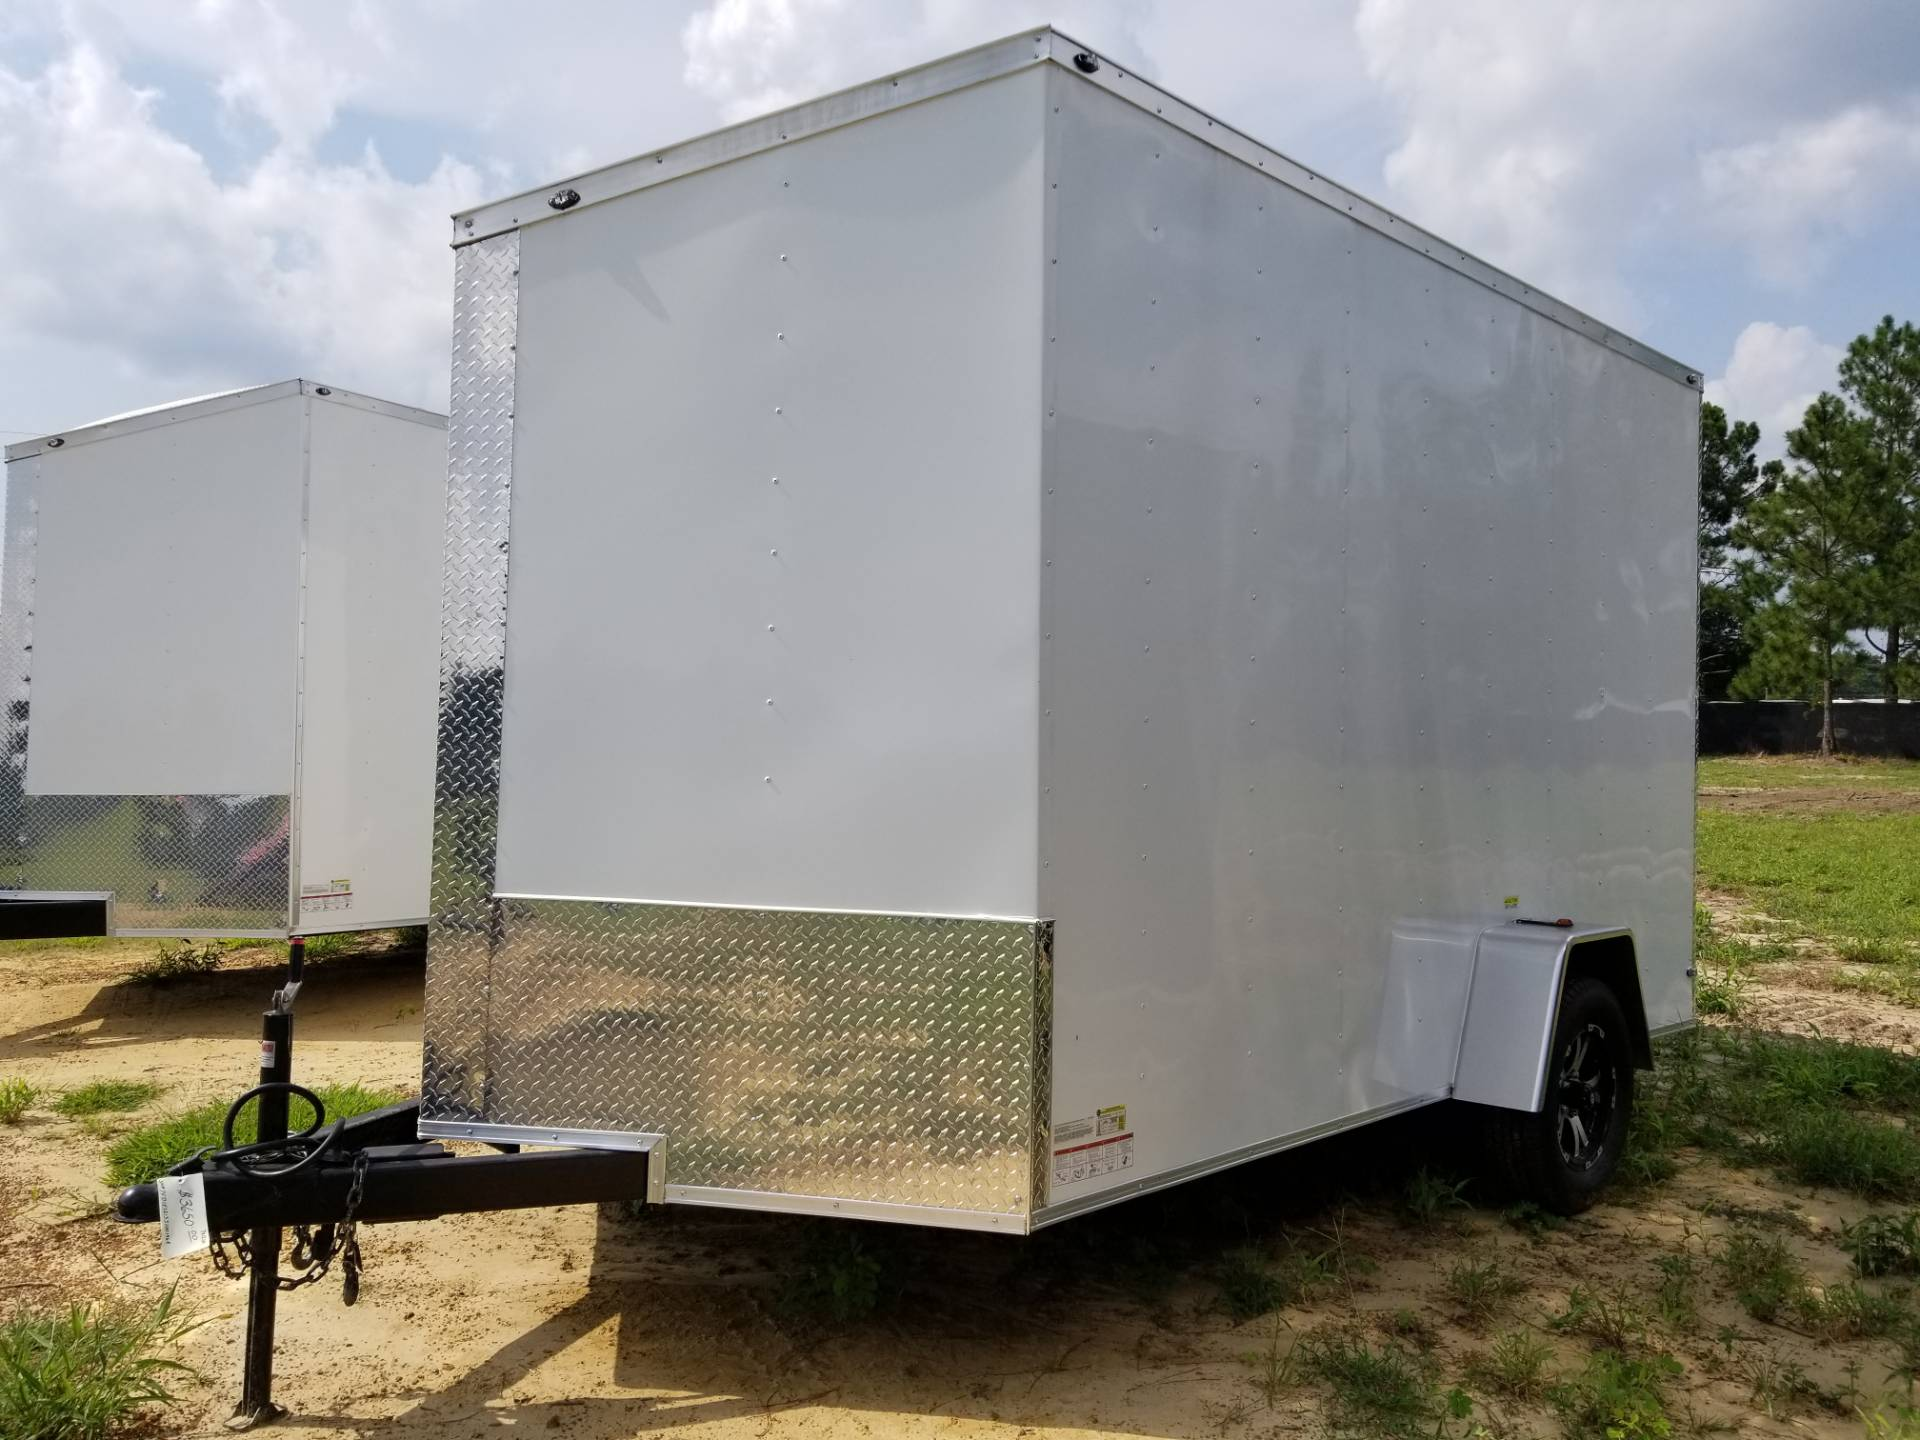 2018 DEEP SOUTH CARGO DEEP SOUTH 7 X 12 SINGLE AXLE CARGO TRAILER in Tifton, Georgia